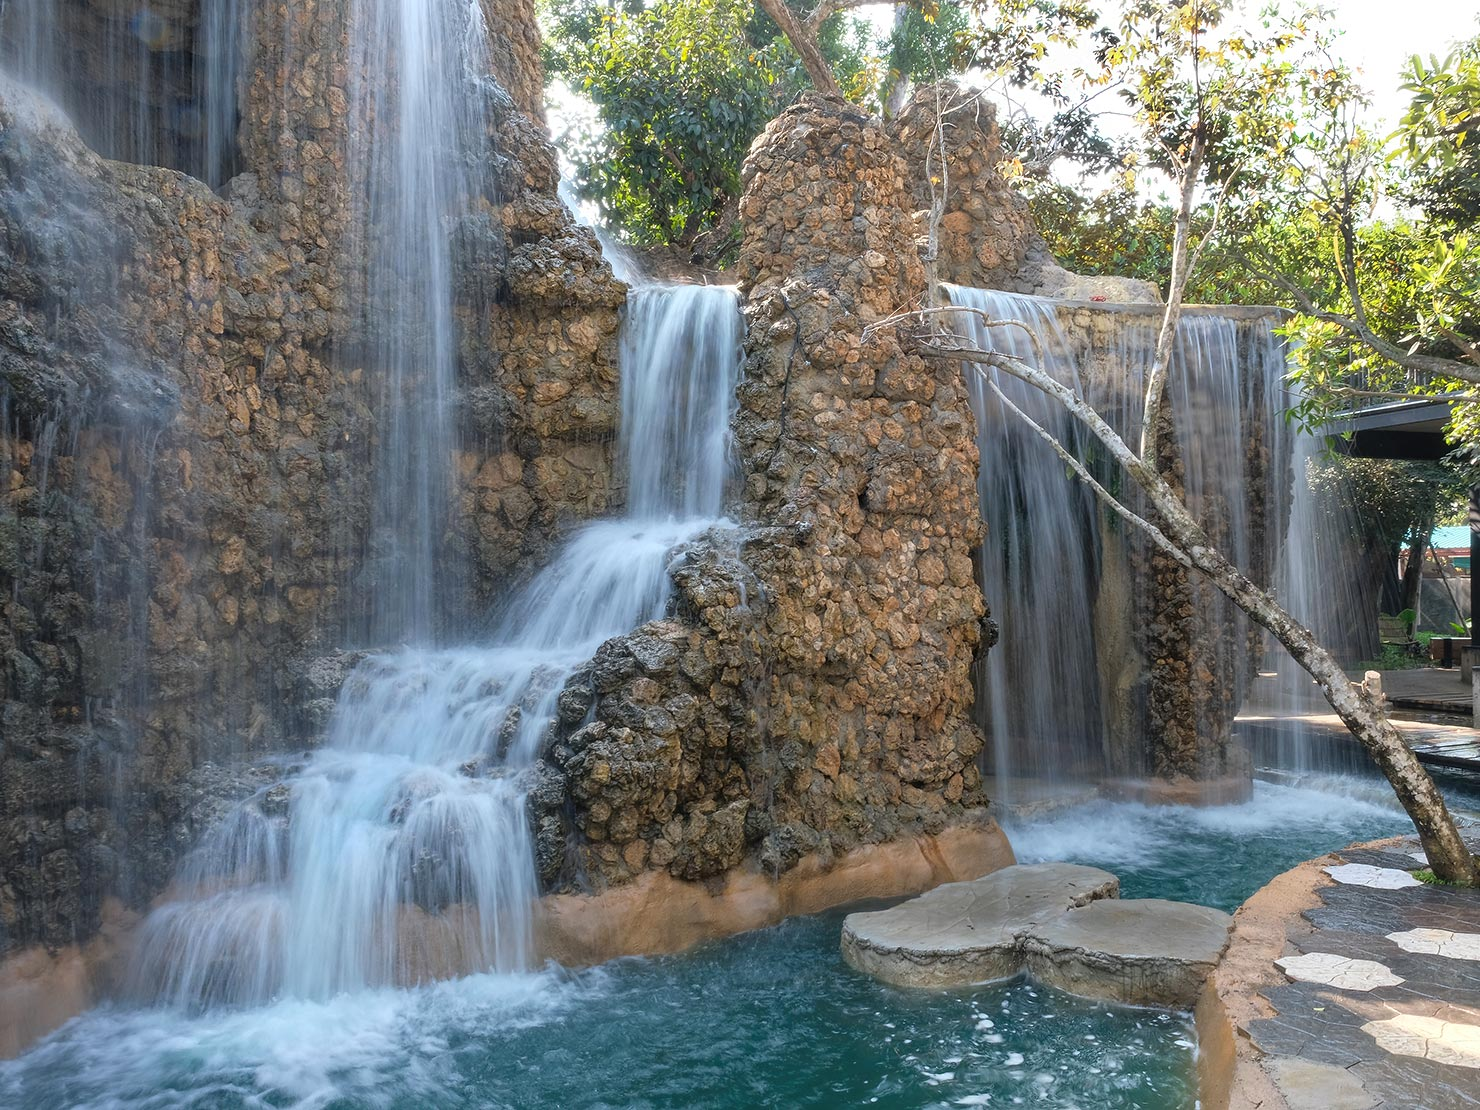 Waterfall near the entrance of Dantewada Waterfall Park provides a stunning backdrop for the coffee shop